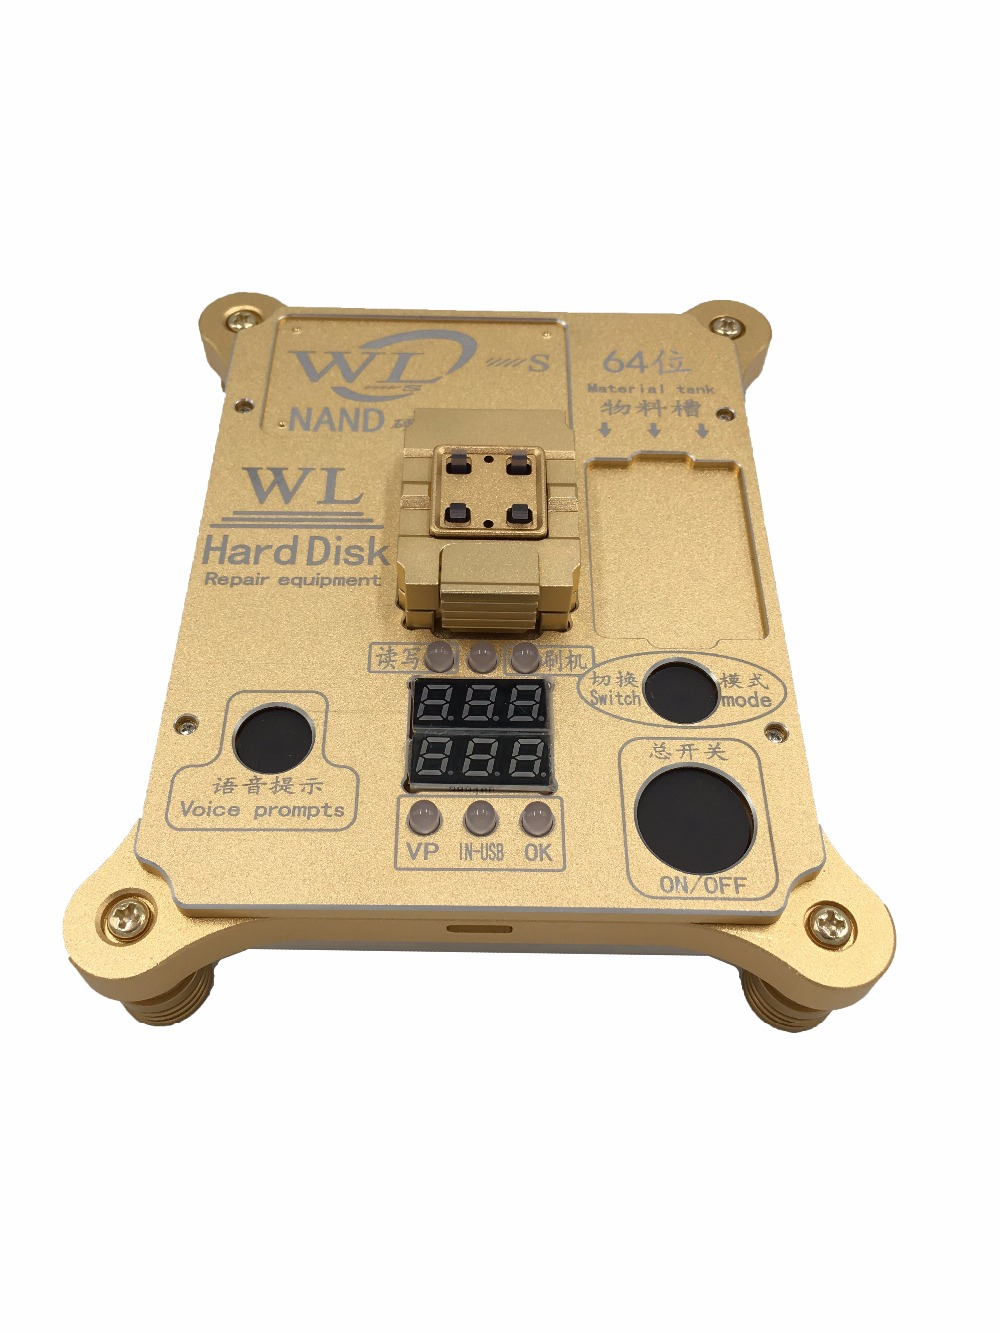 WL 64 Bit hard disk test repair instrument IC Chip Mainboard Nand Flash Programmer HDD Serial Number SN for iPhone 5S to 6 Plus